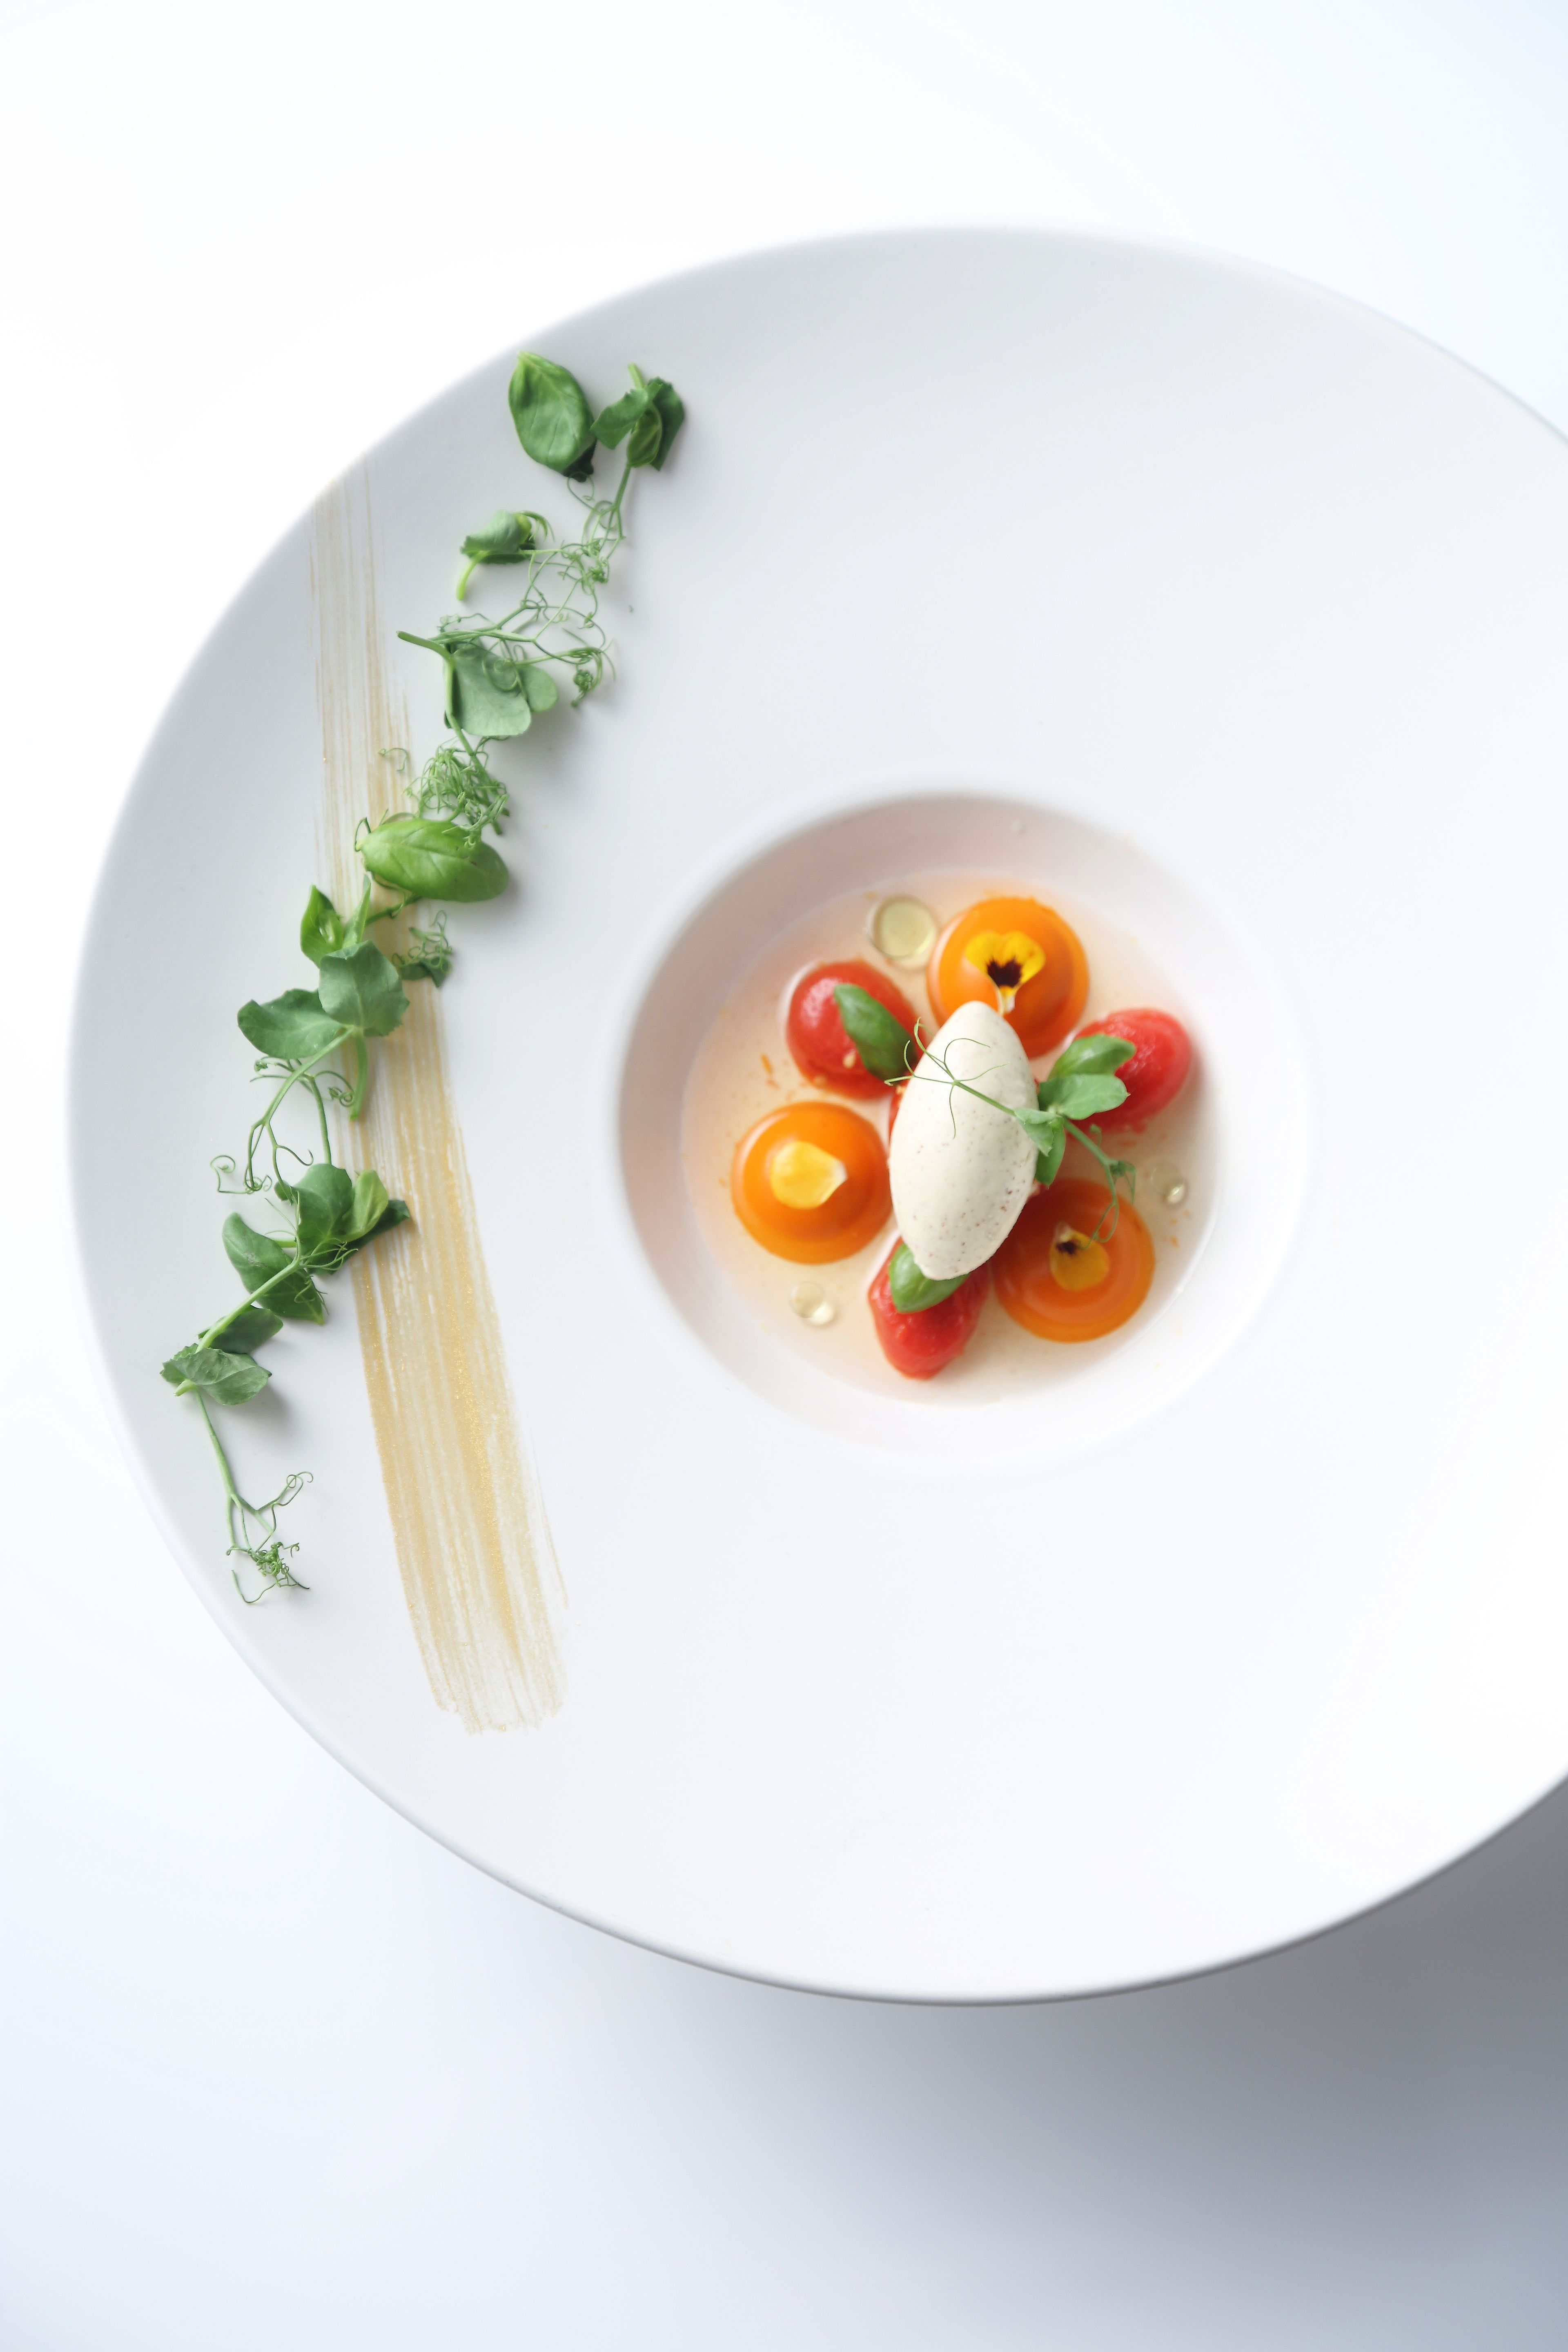 Beautifully presented fish dish from a Michelin starred restaurant